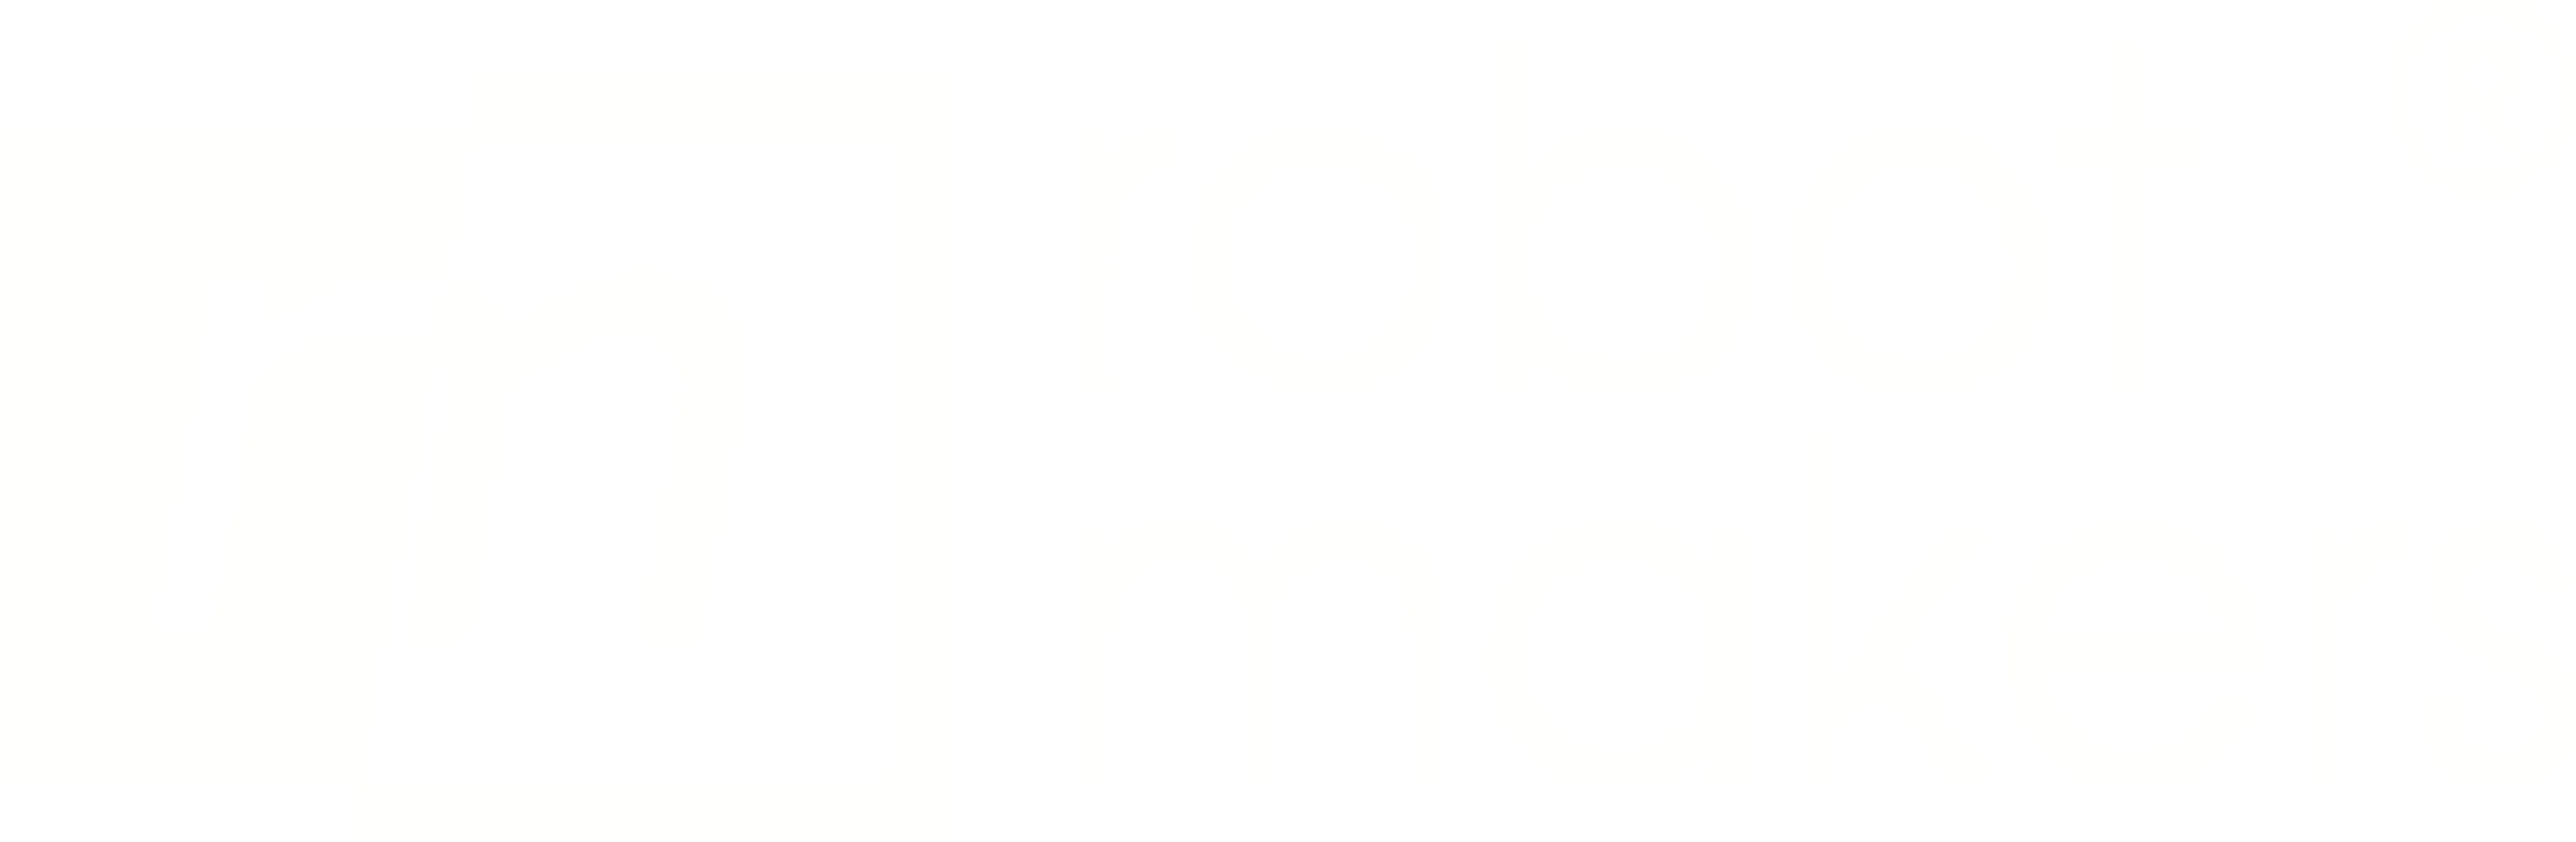 Logo der Robot Makers GmbH - Intelligente Mobile Maschinen